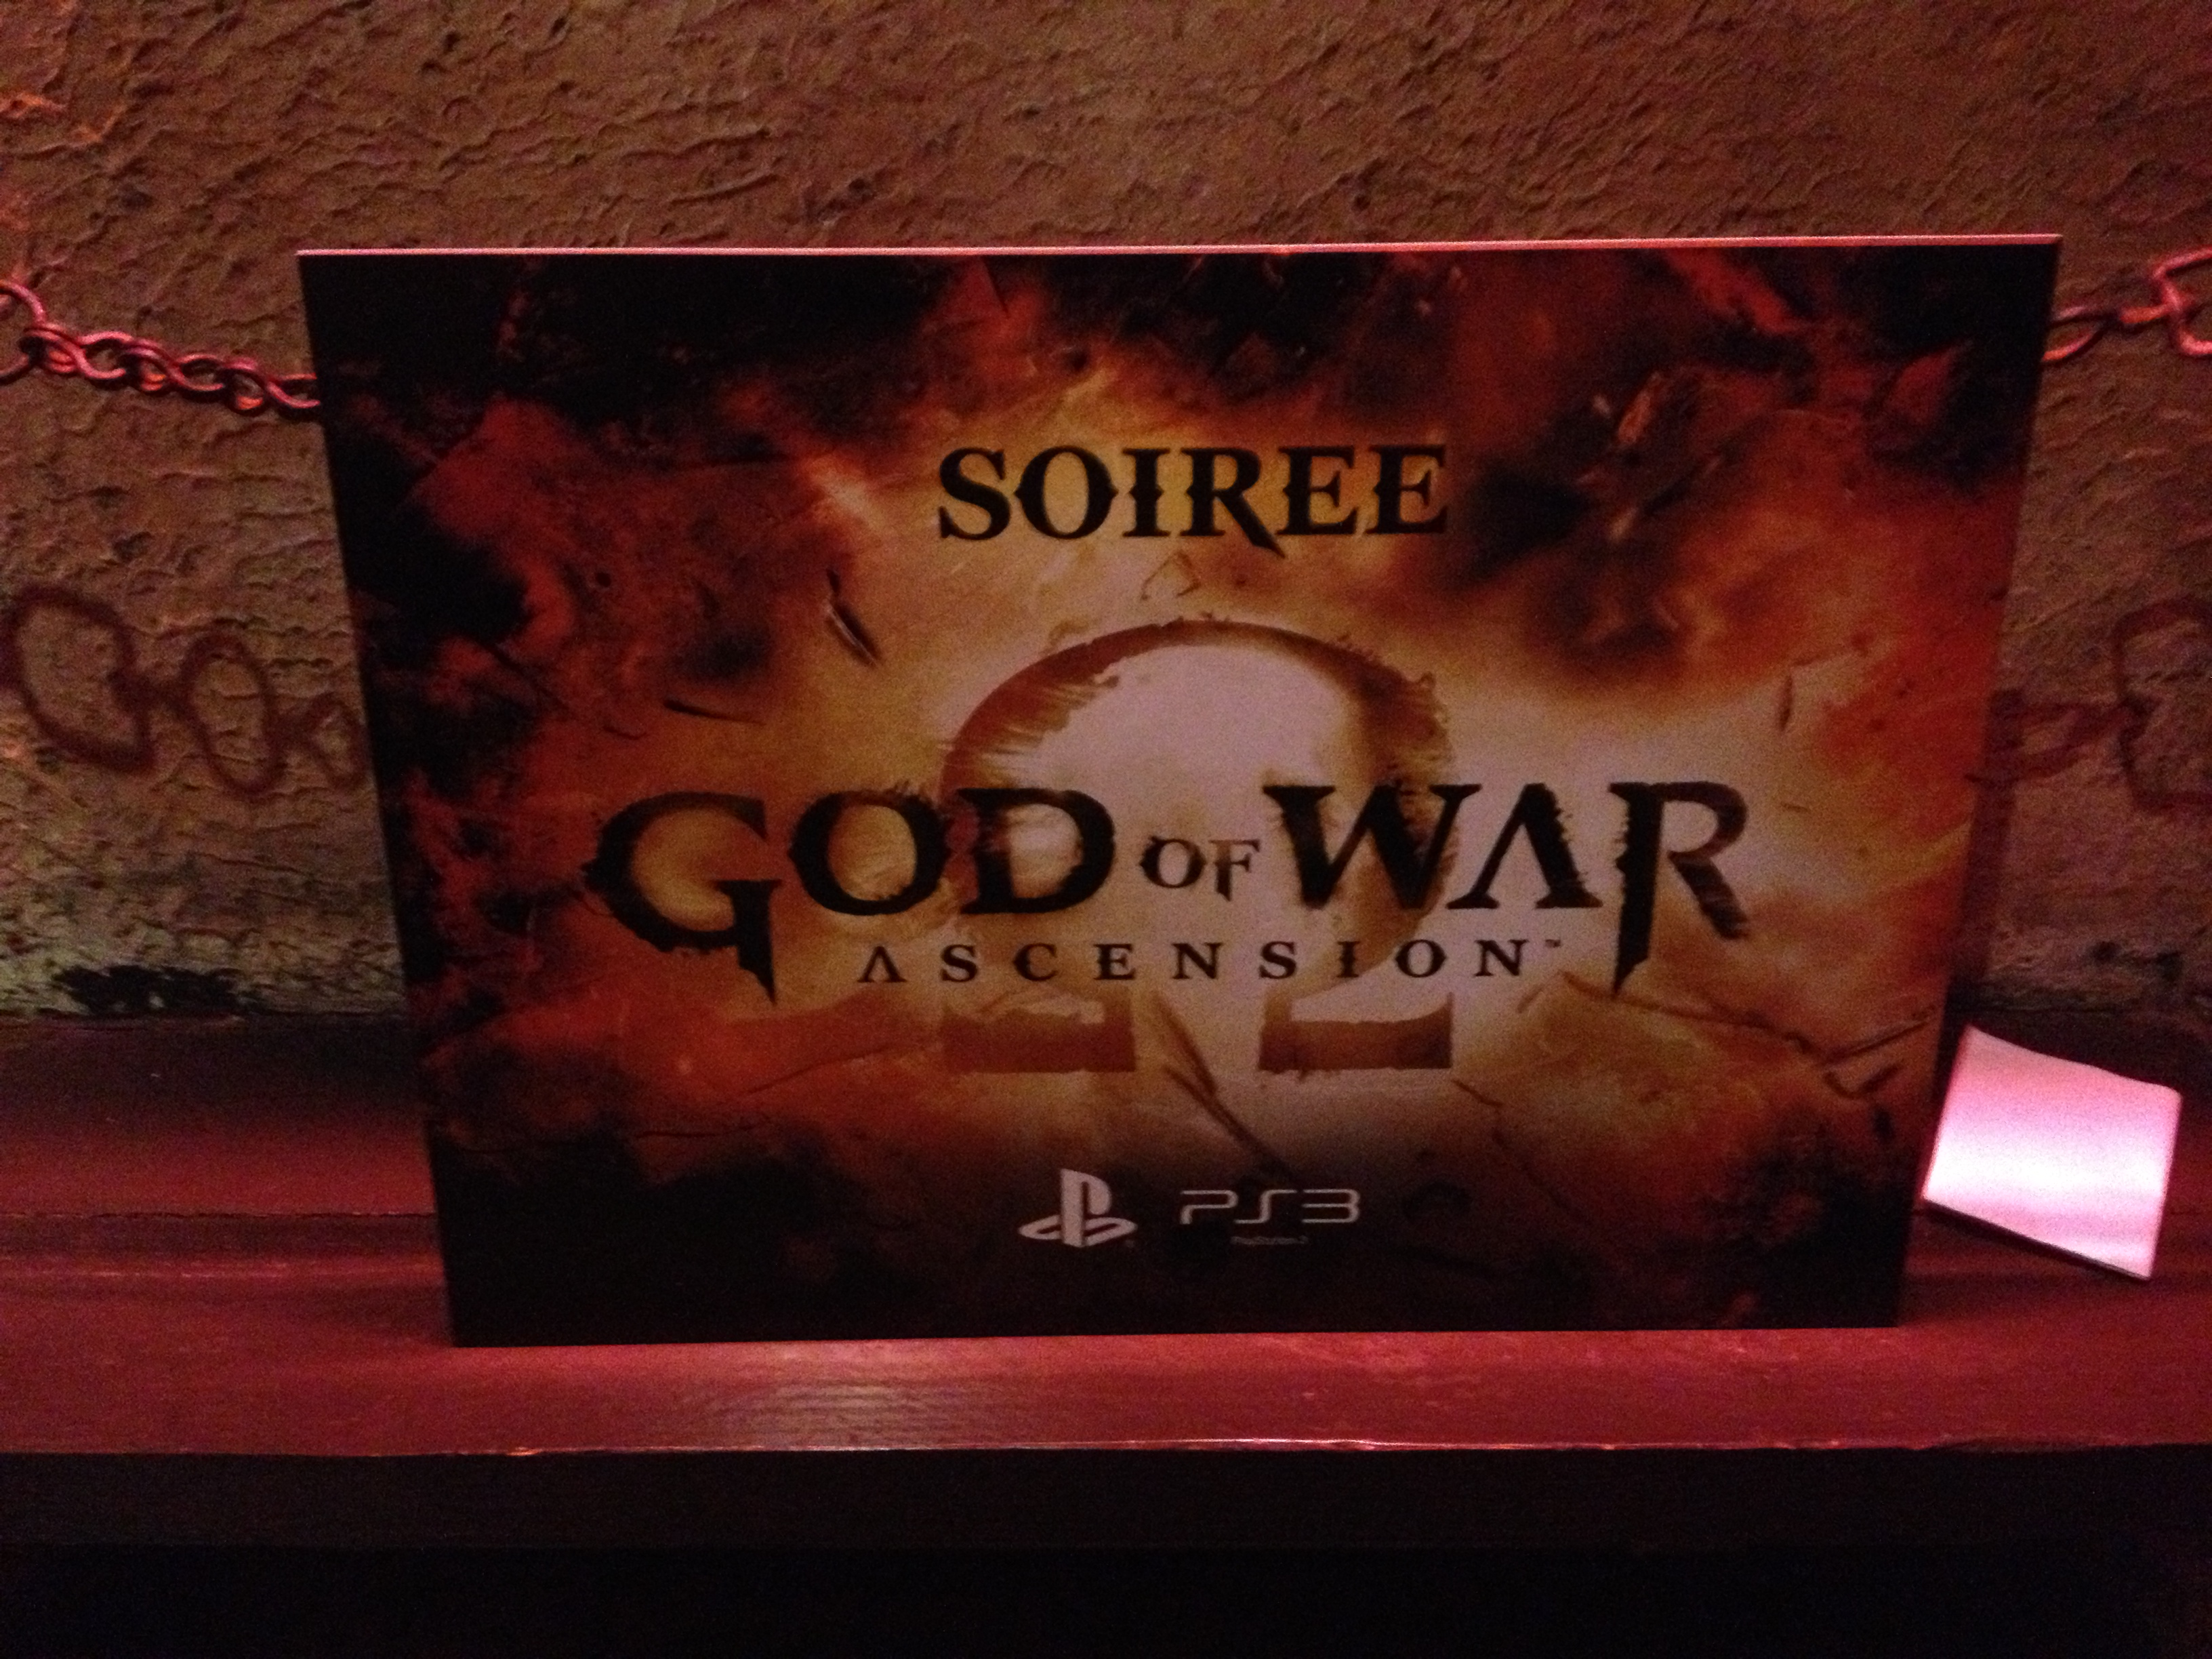 [COMPTE-RENDU] Soiree de lancement God of War : Ascension